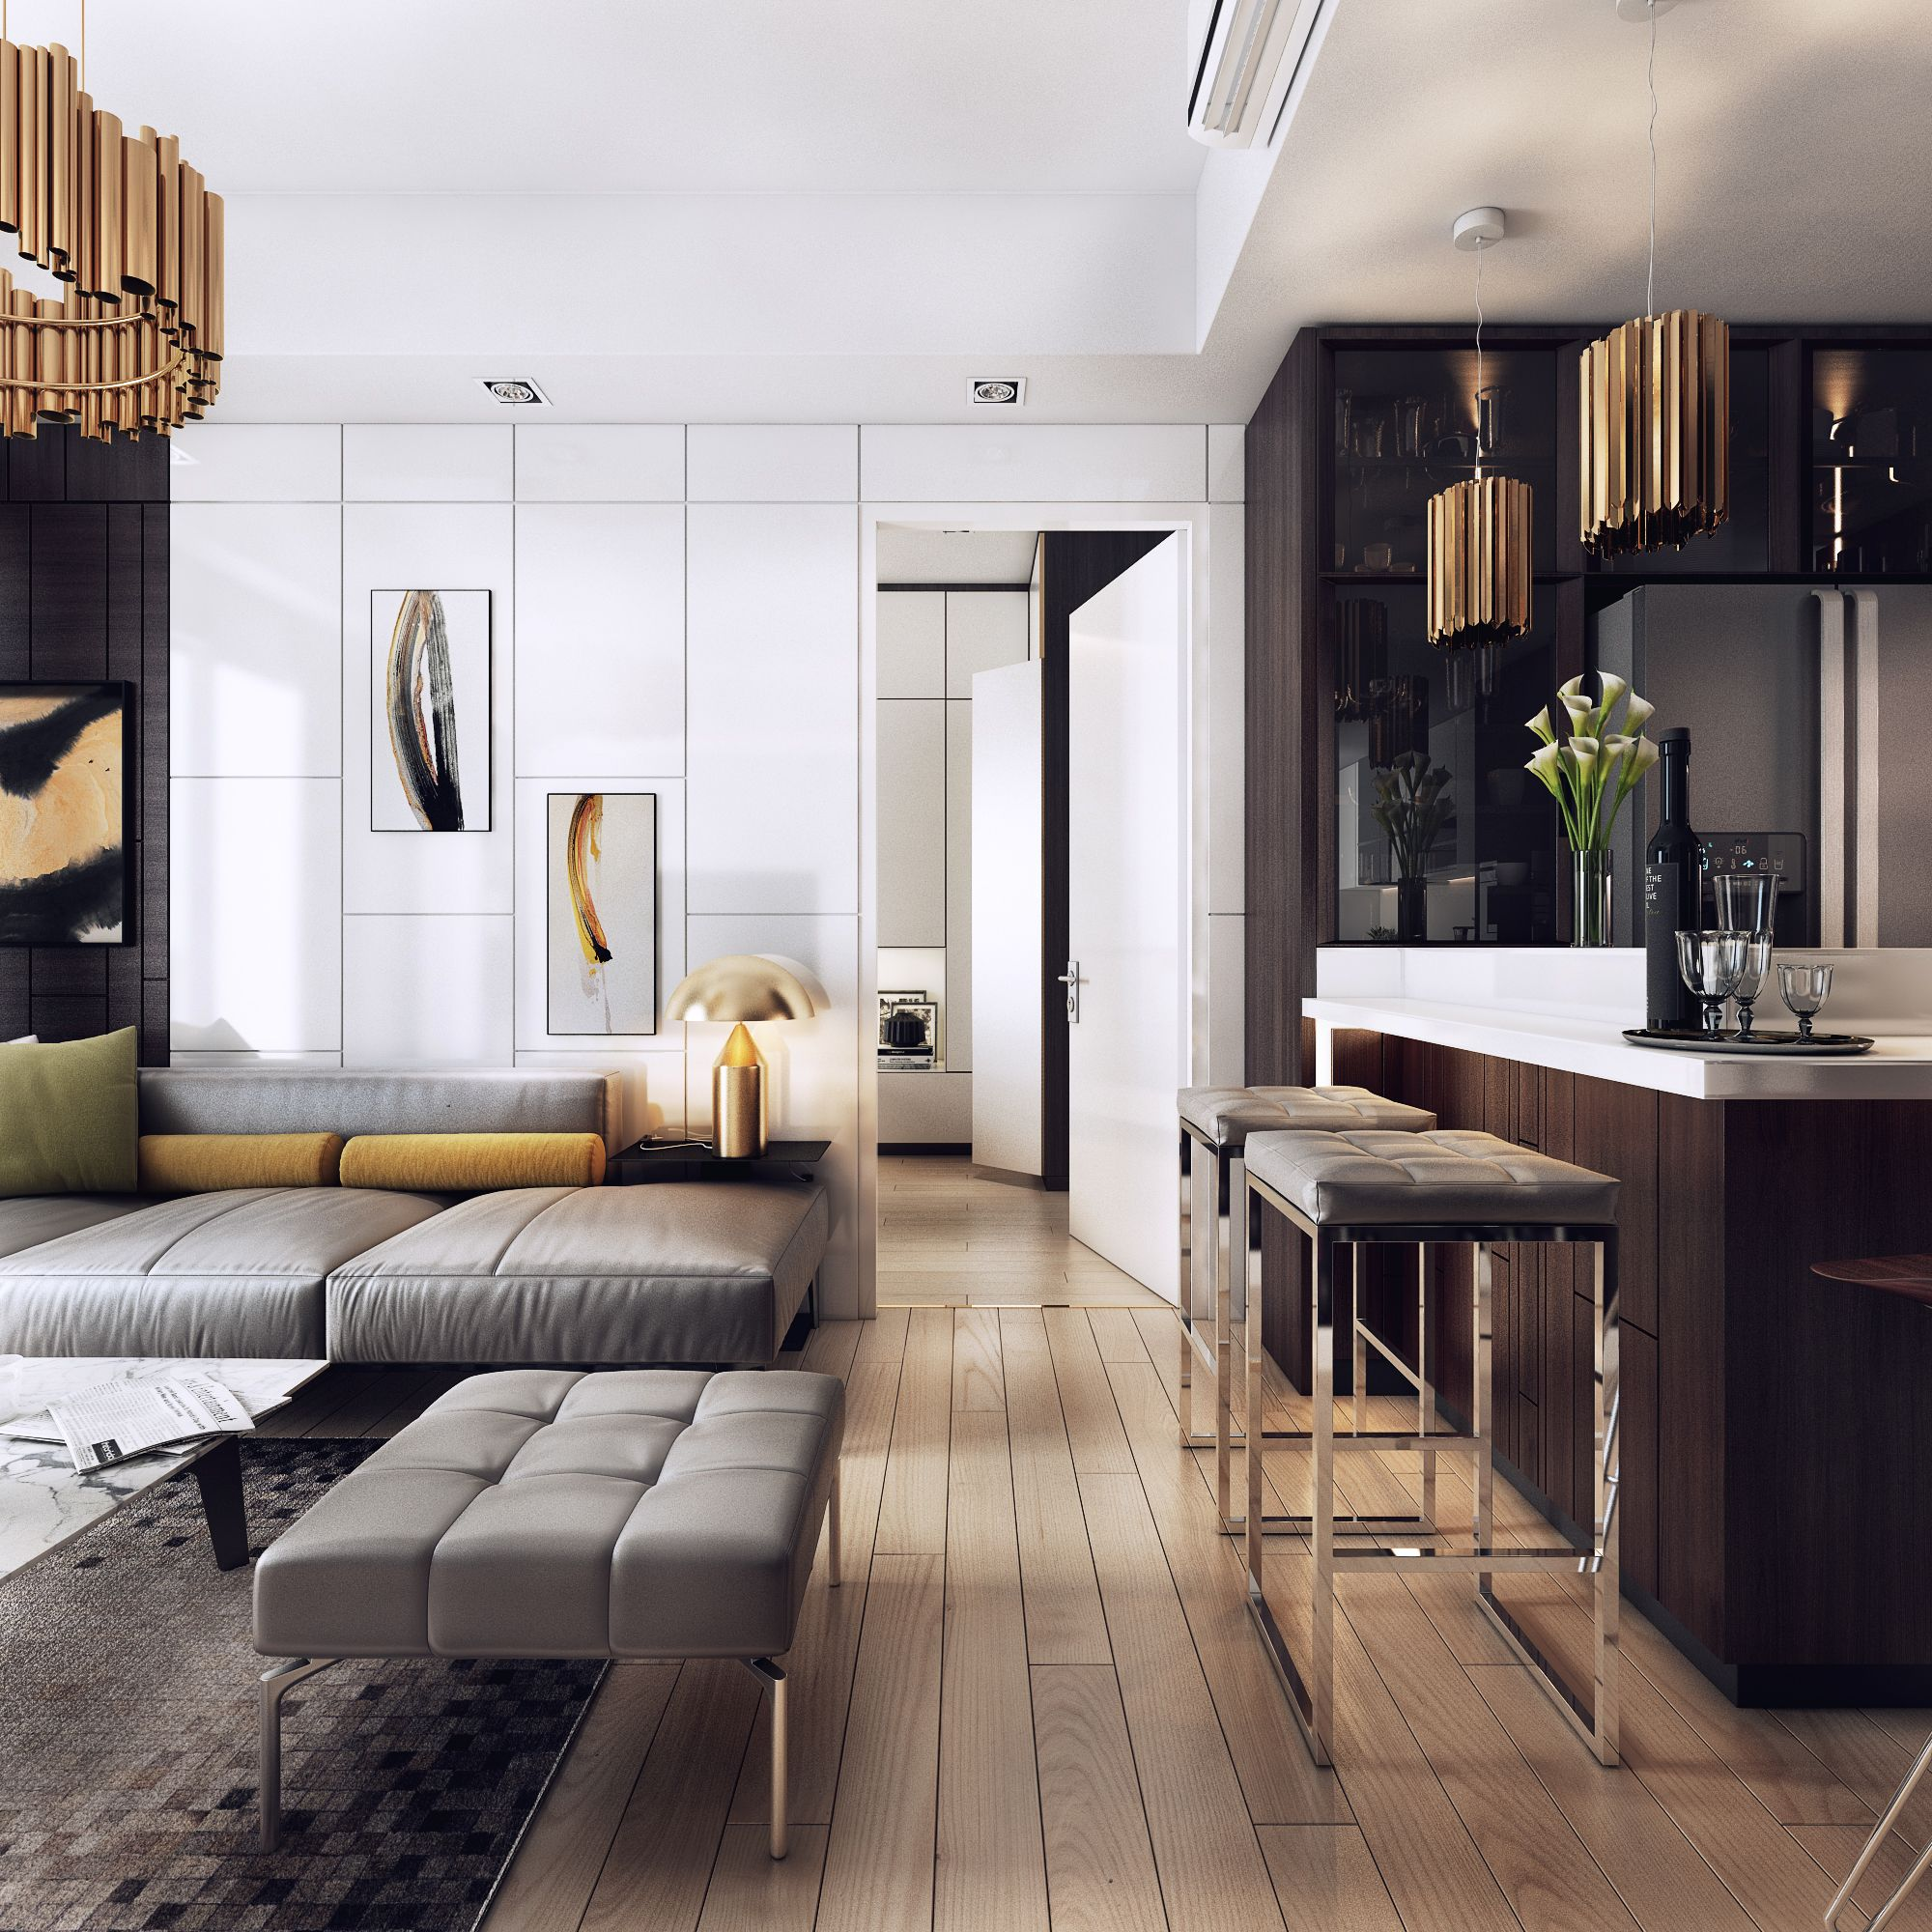 10 Ultra Luxury Apartment Interior Design Ideas | Contemporary style ...